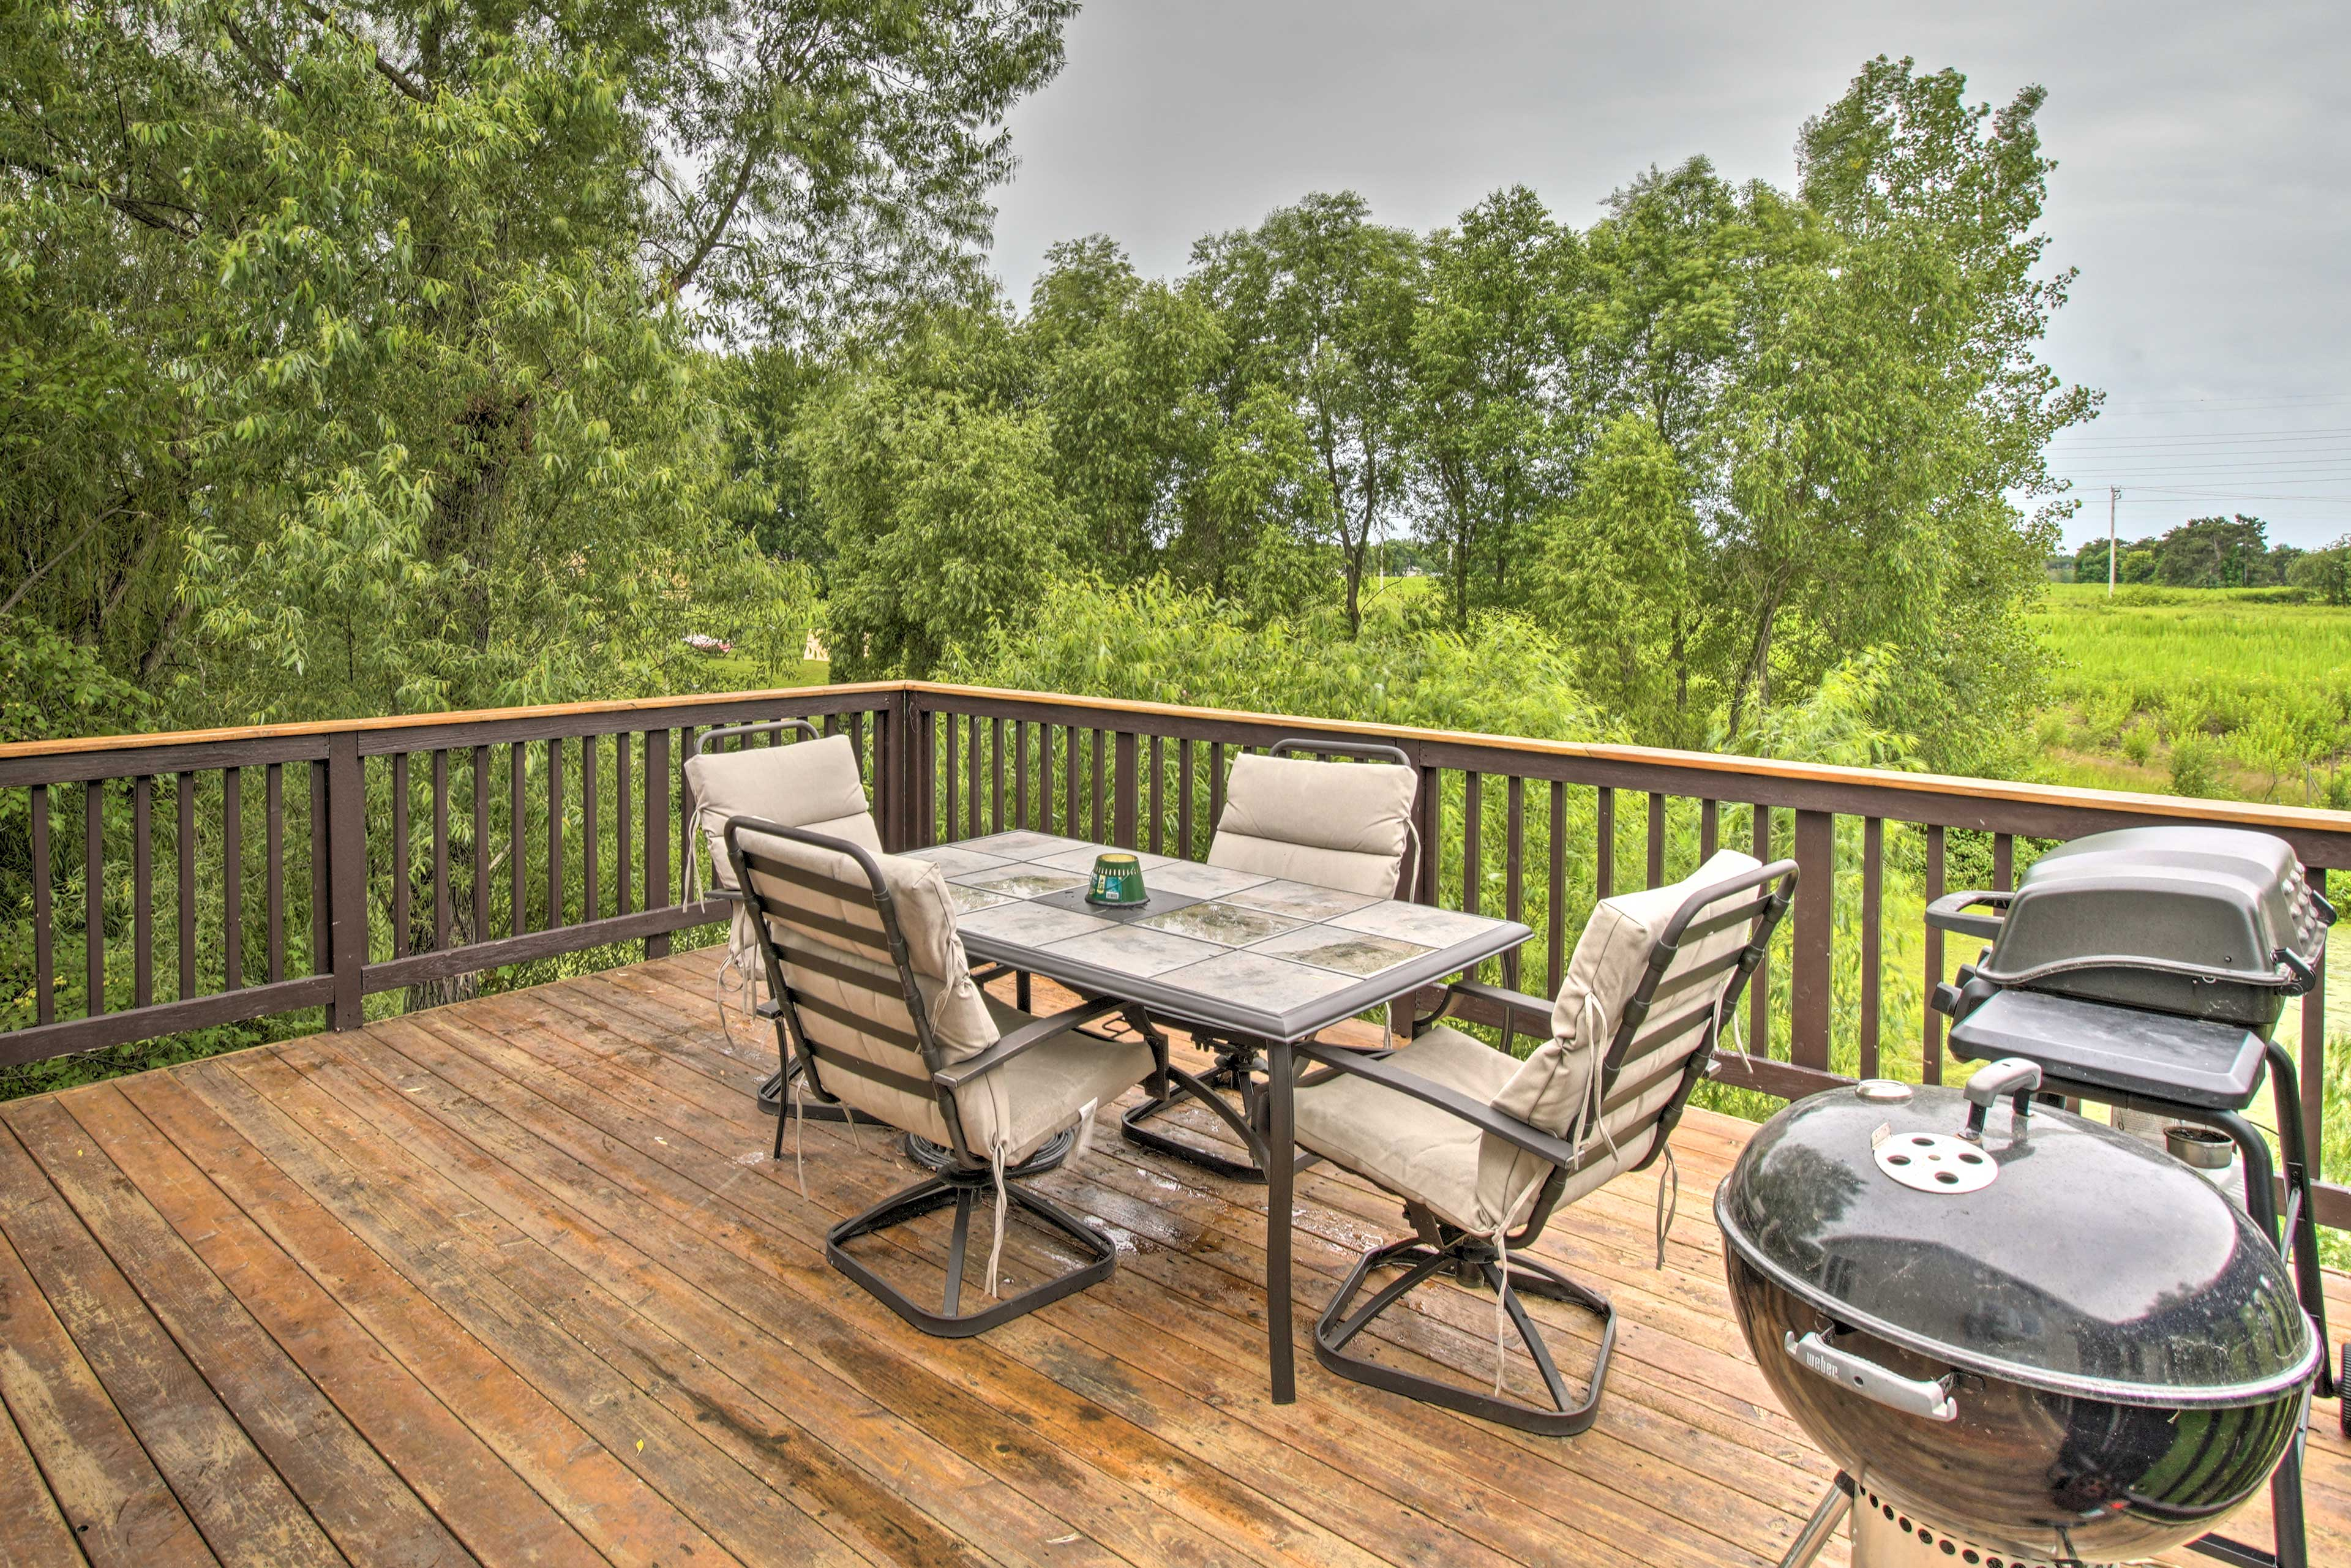 Enjoy a trip to Hugo with  group of 8 to this vacation rental house.